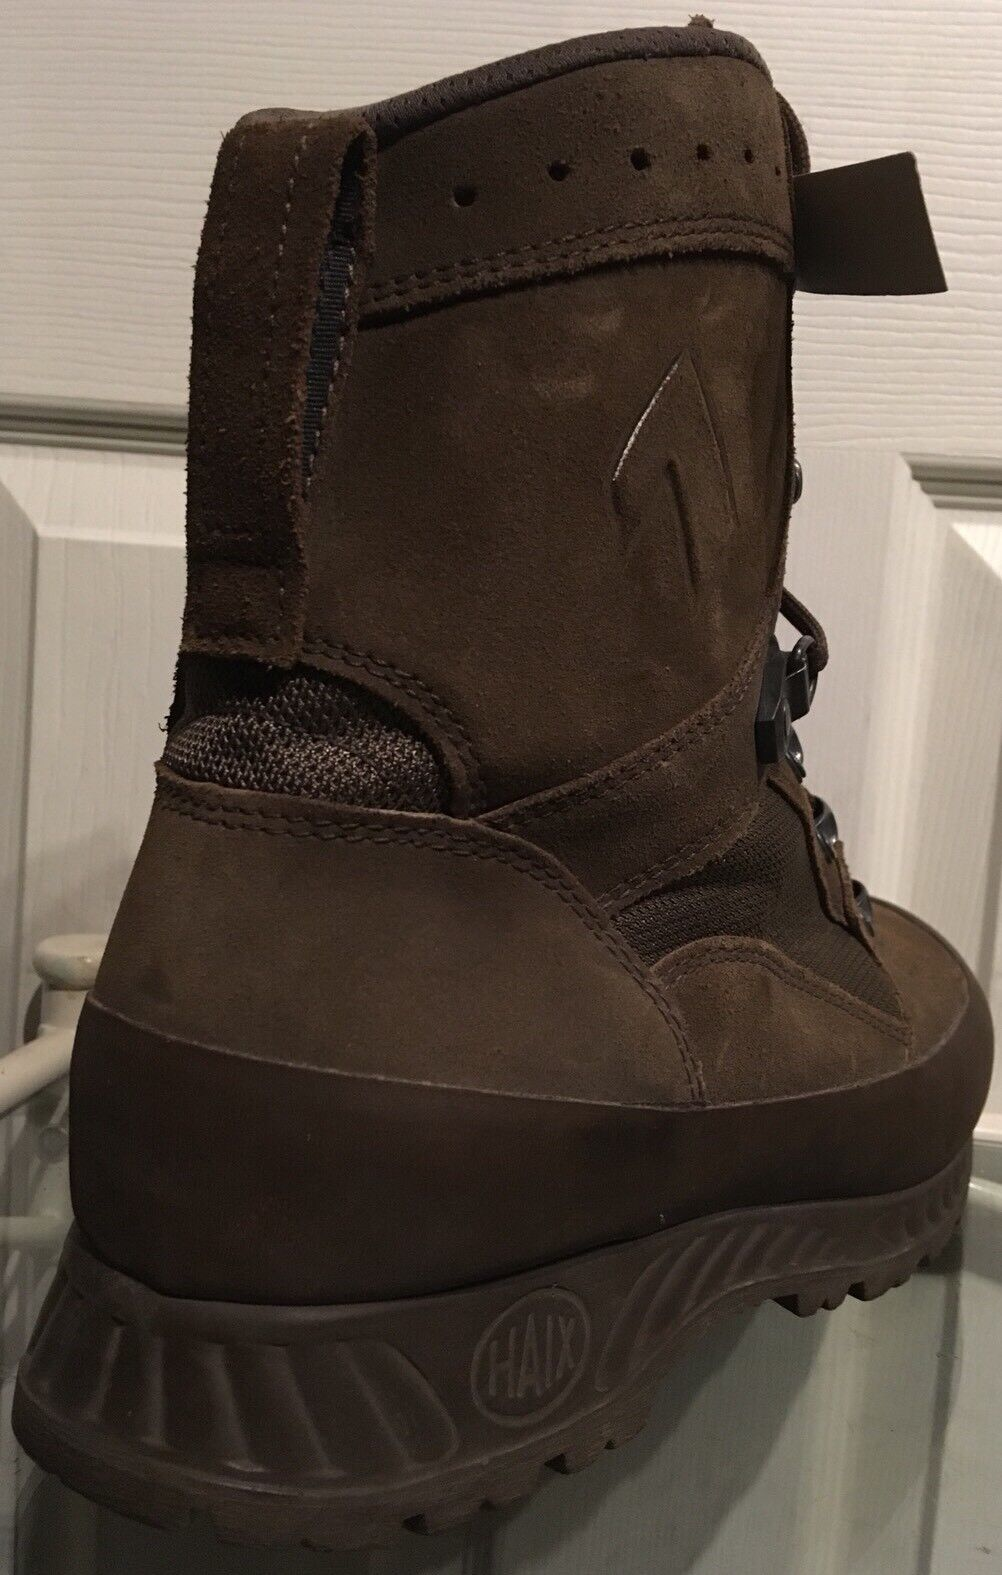 Haix Desert Brown Suede MTP Army Issue Combat Boots 8M HXD38M